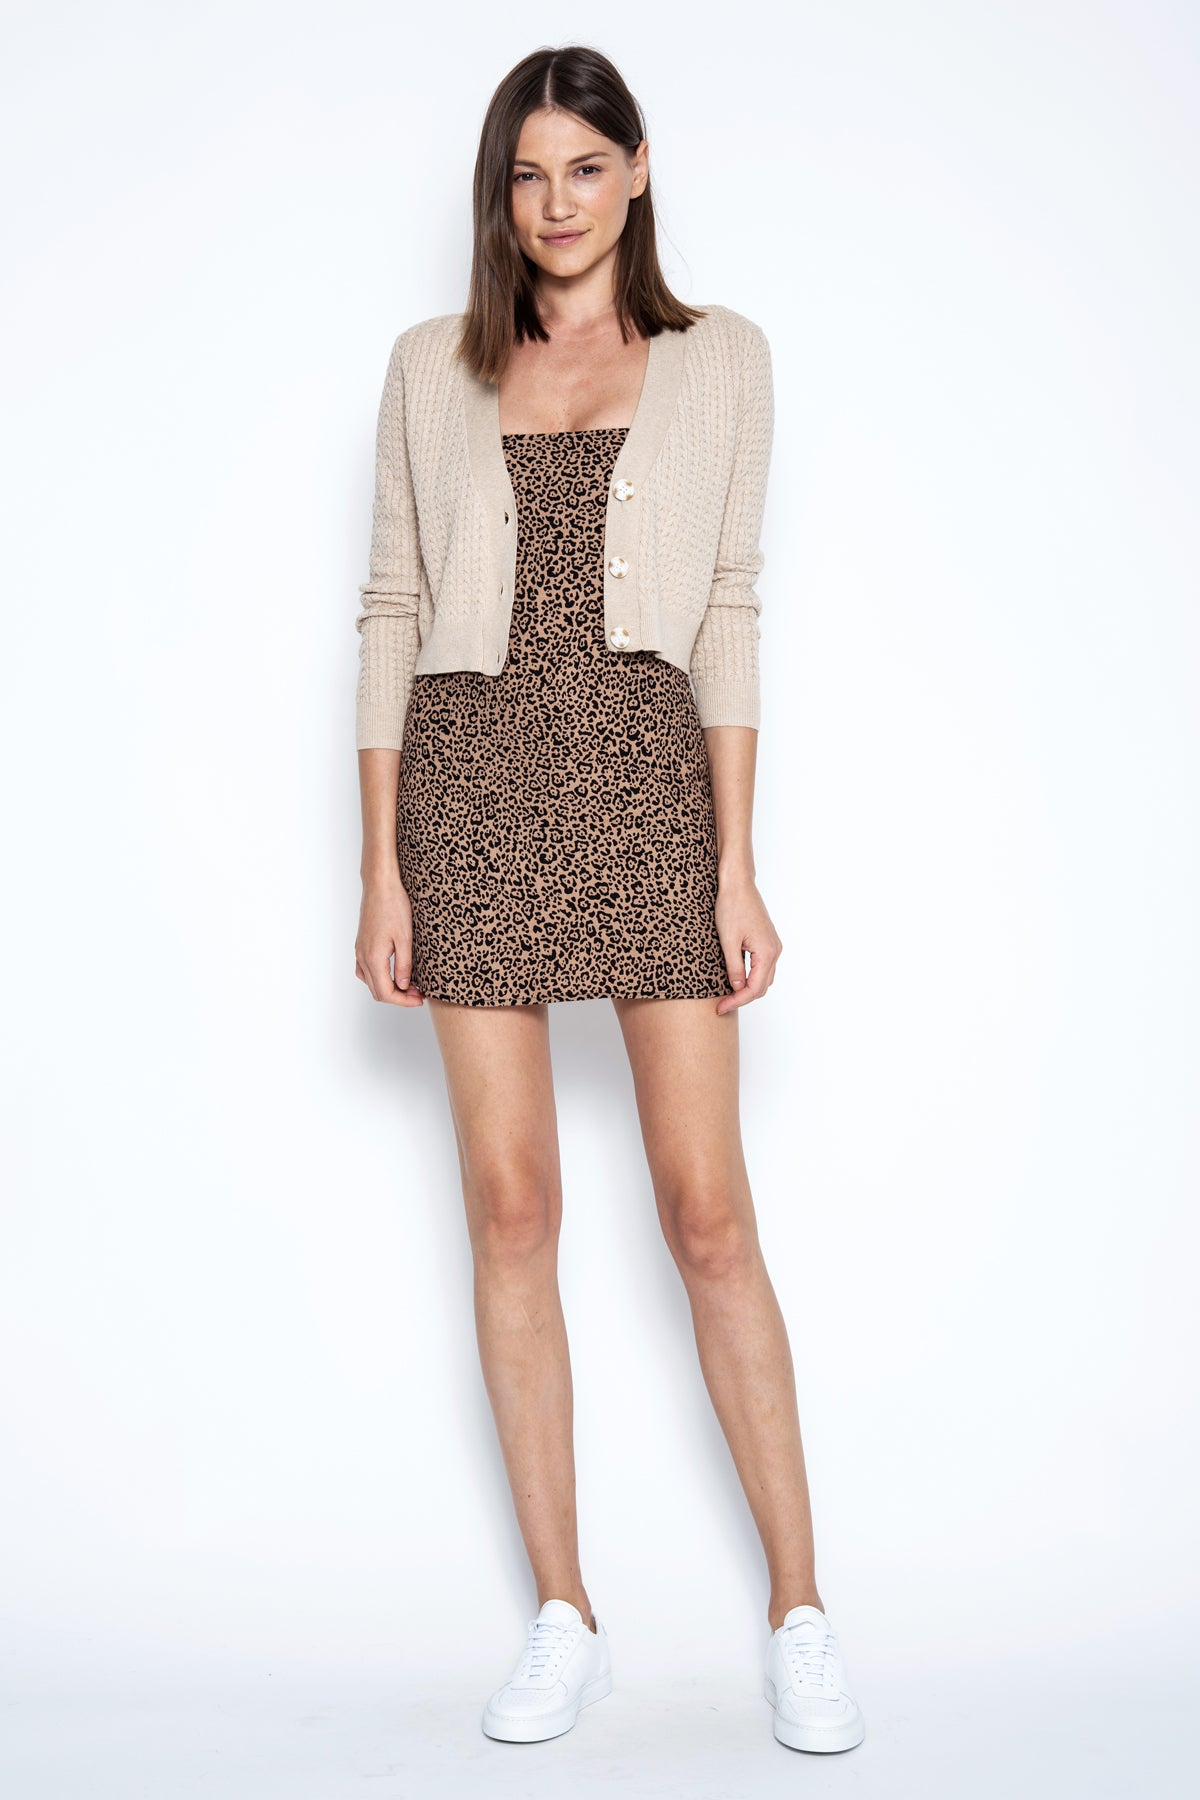 Maxwell Cropped Cardi - Sand